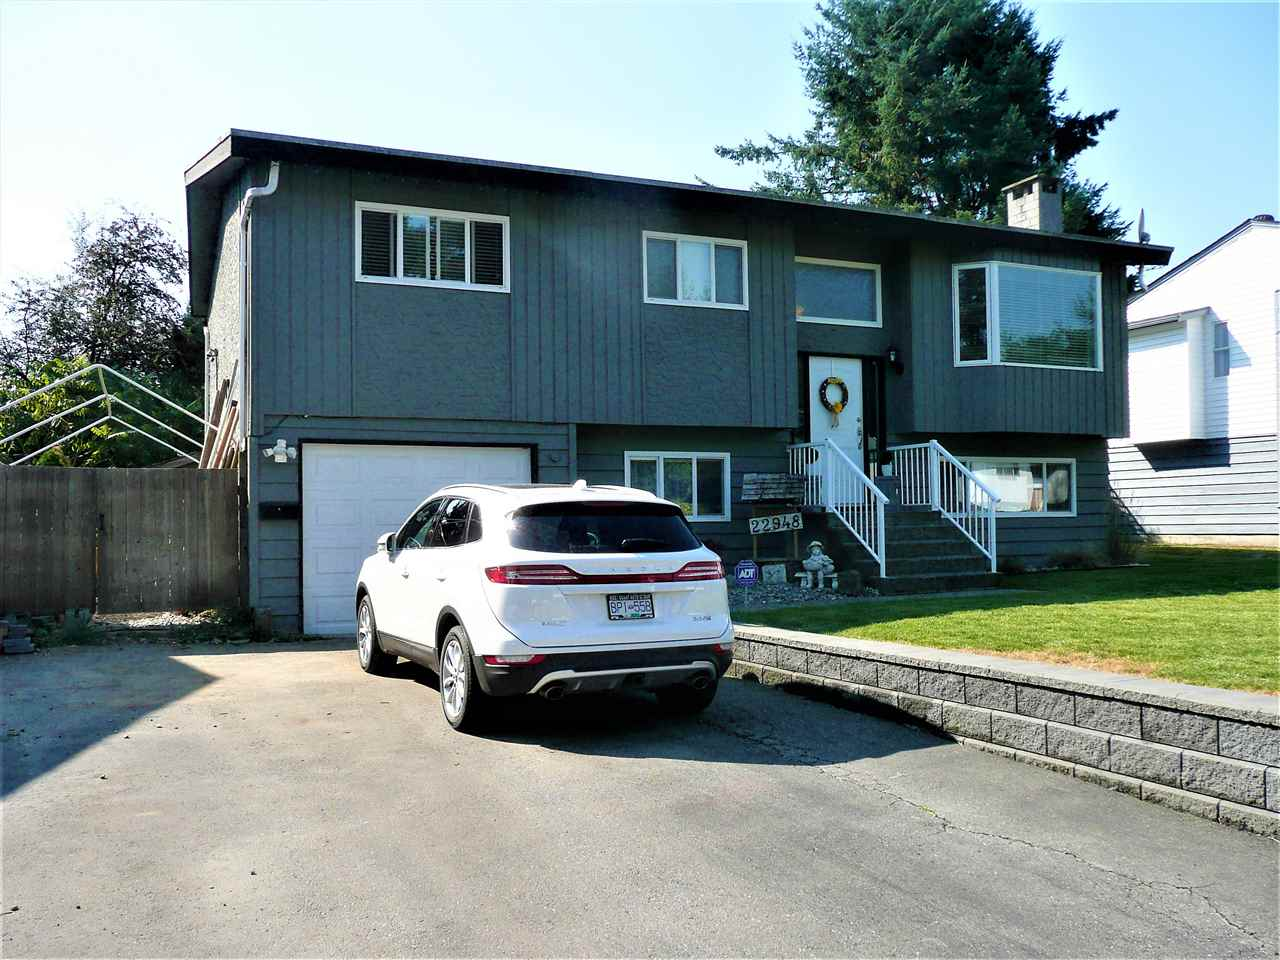 Main Photo: 22948 122 Avenue in Maple Ridge: East Central House for sale : MLS® # R2207798